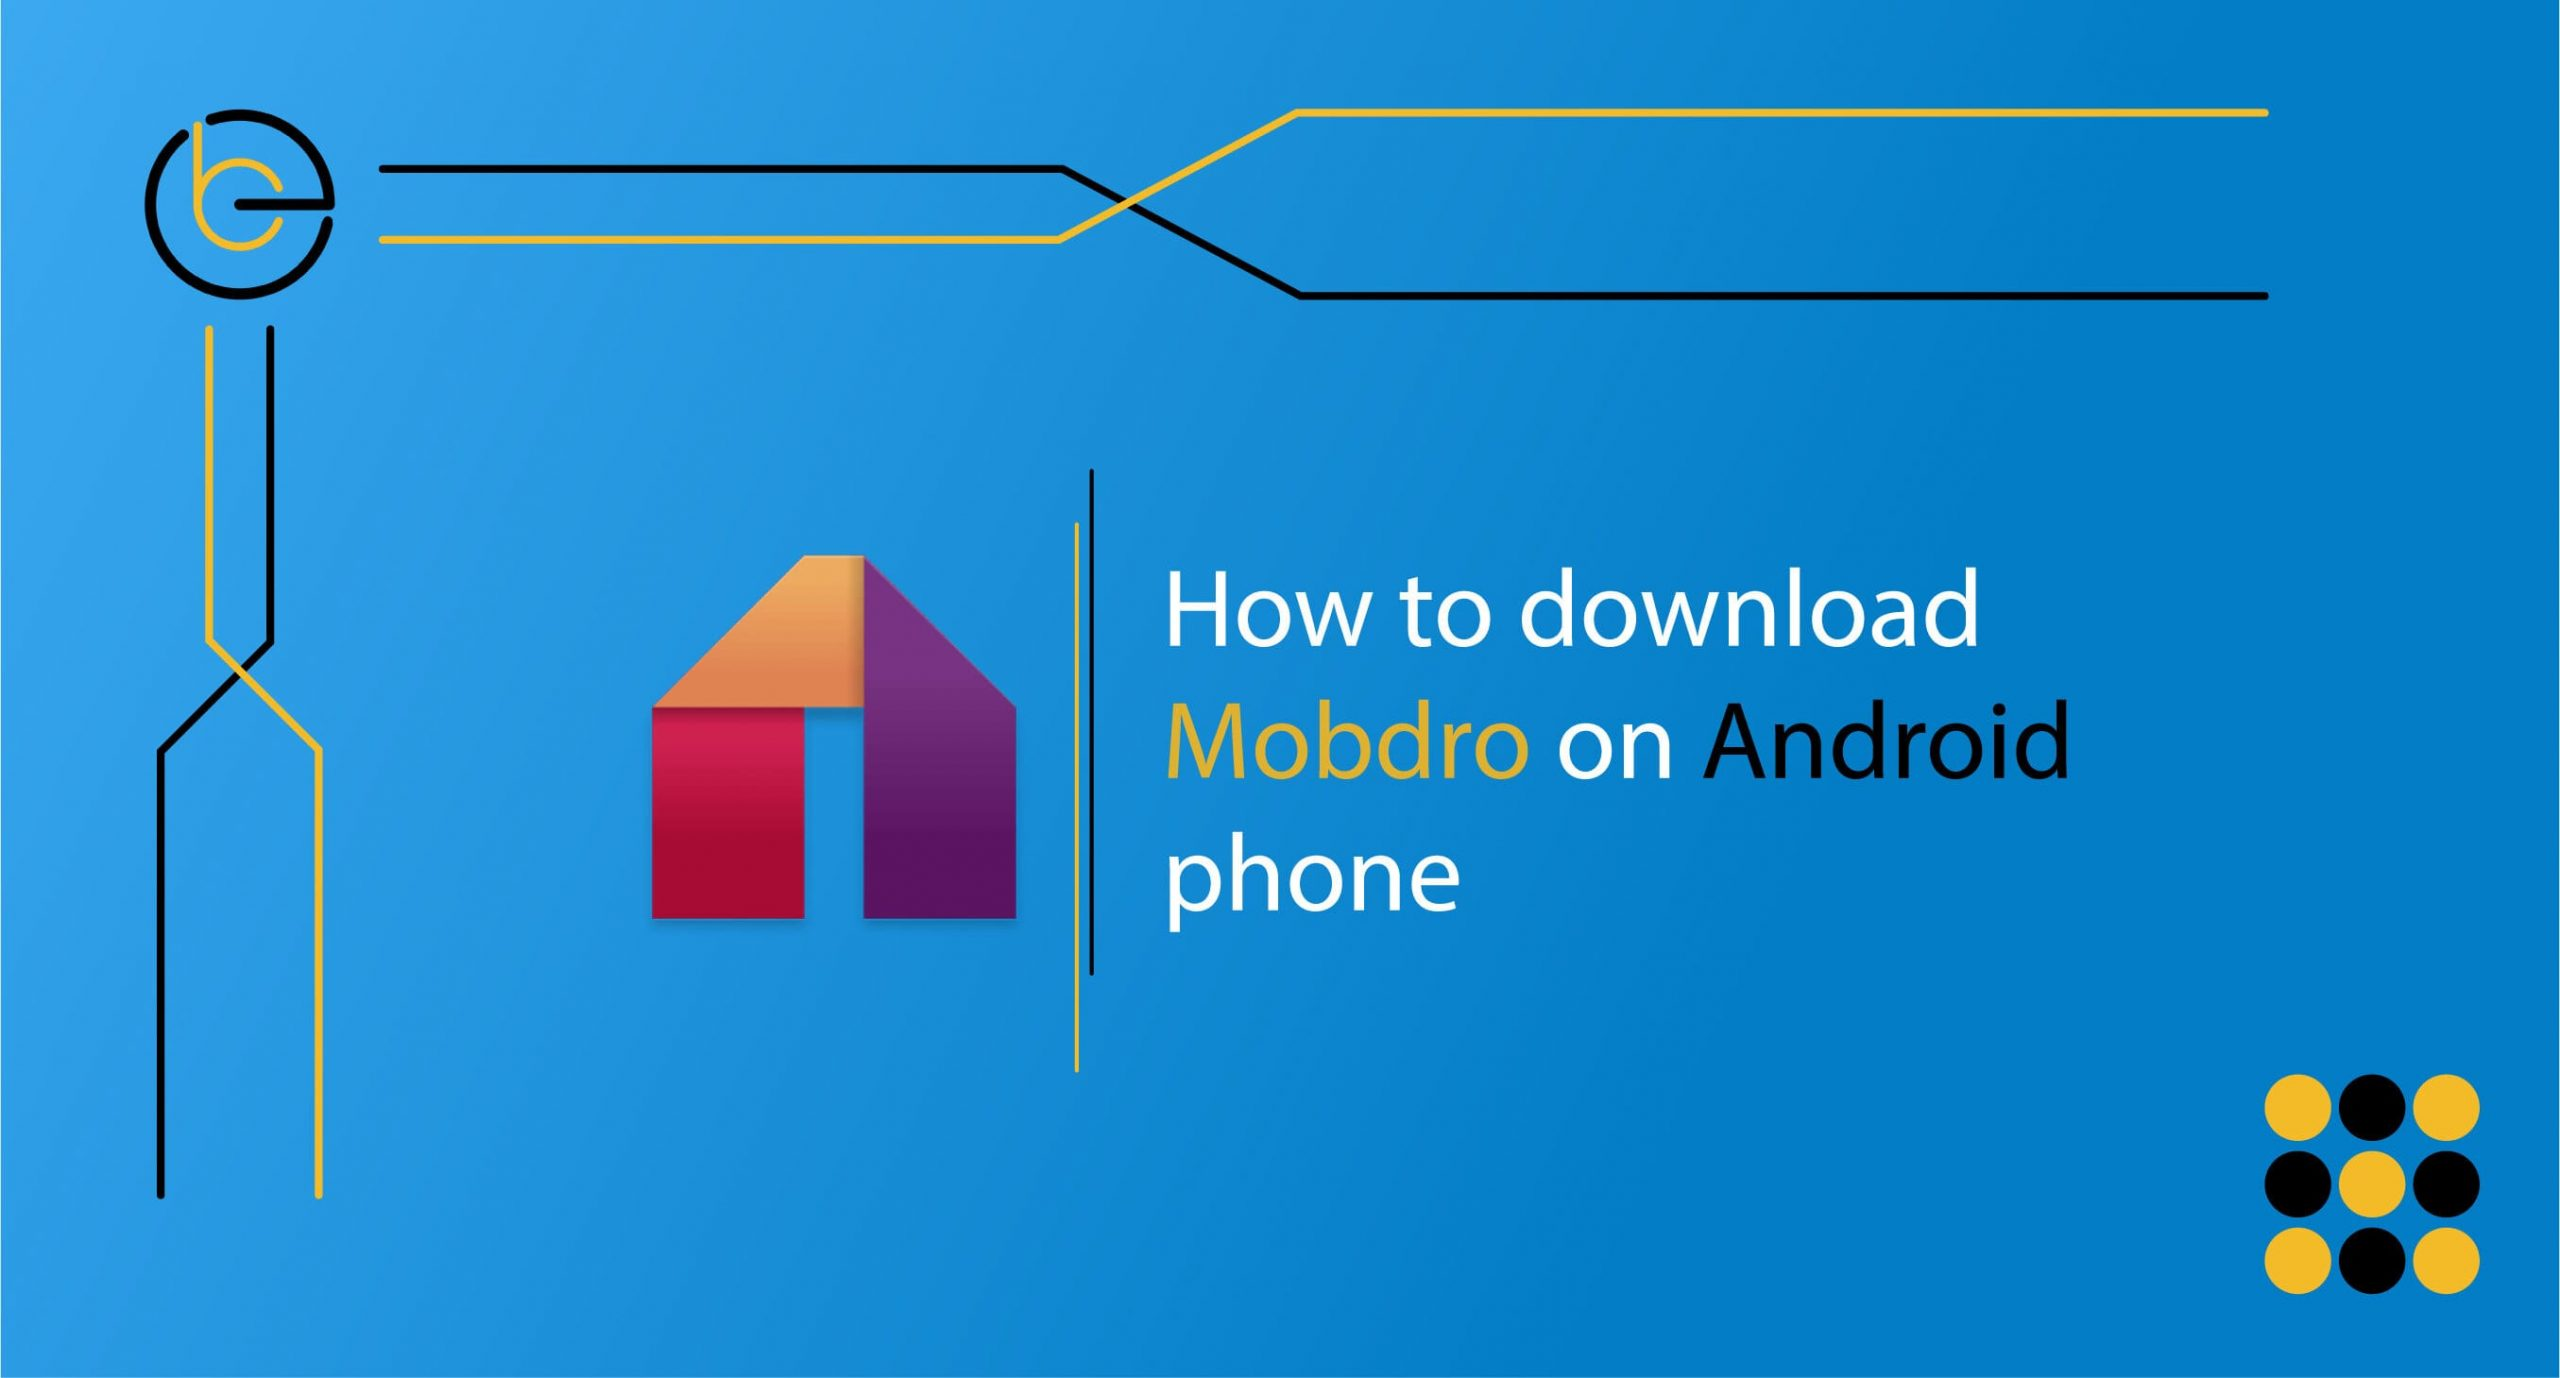 How to download Mobdro on Android phone